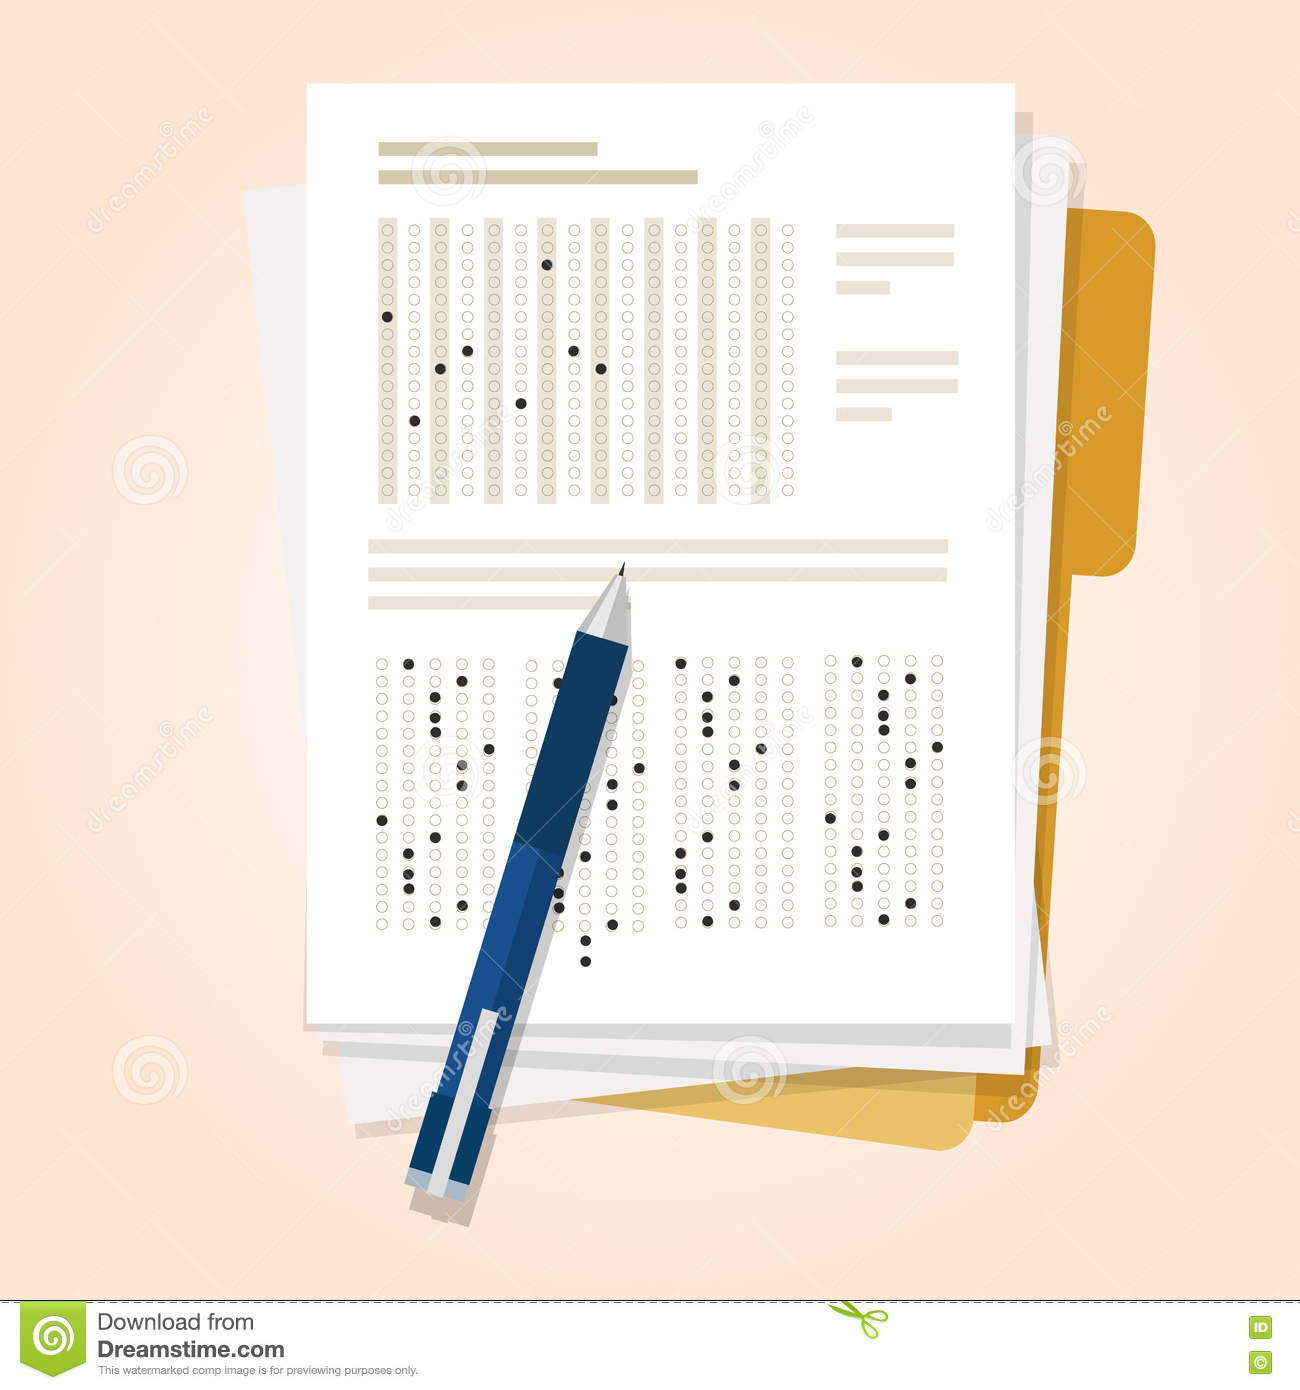 Assessment clipart pencil. Exams quiz test paper jpg library